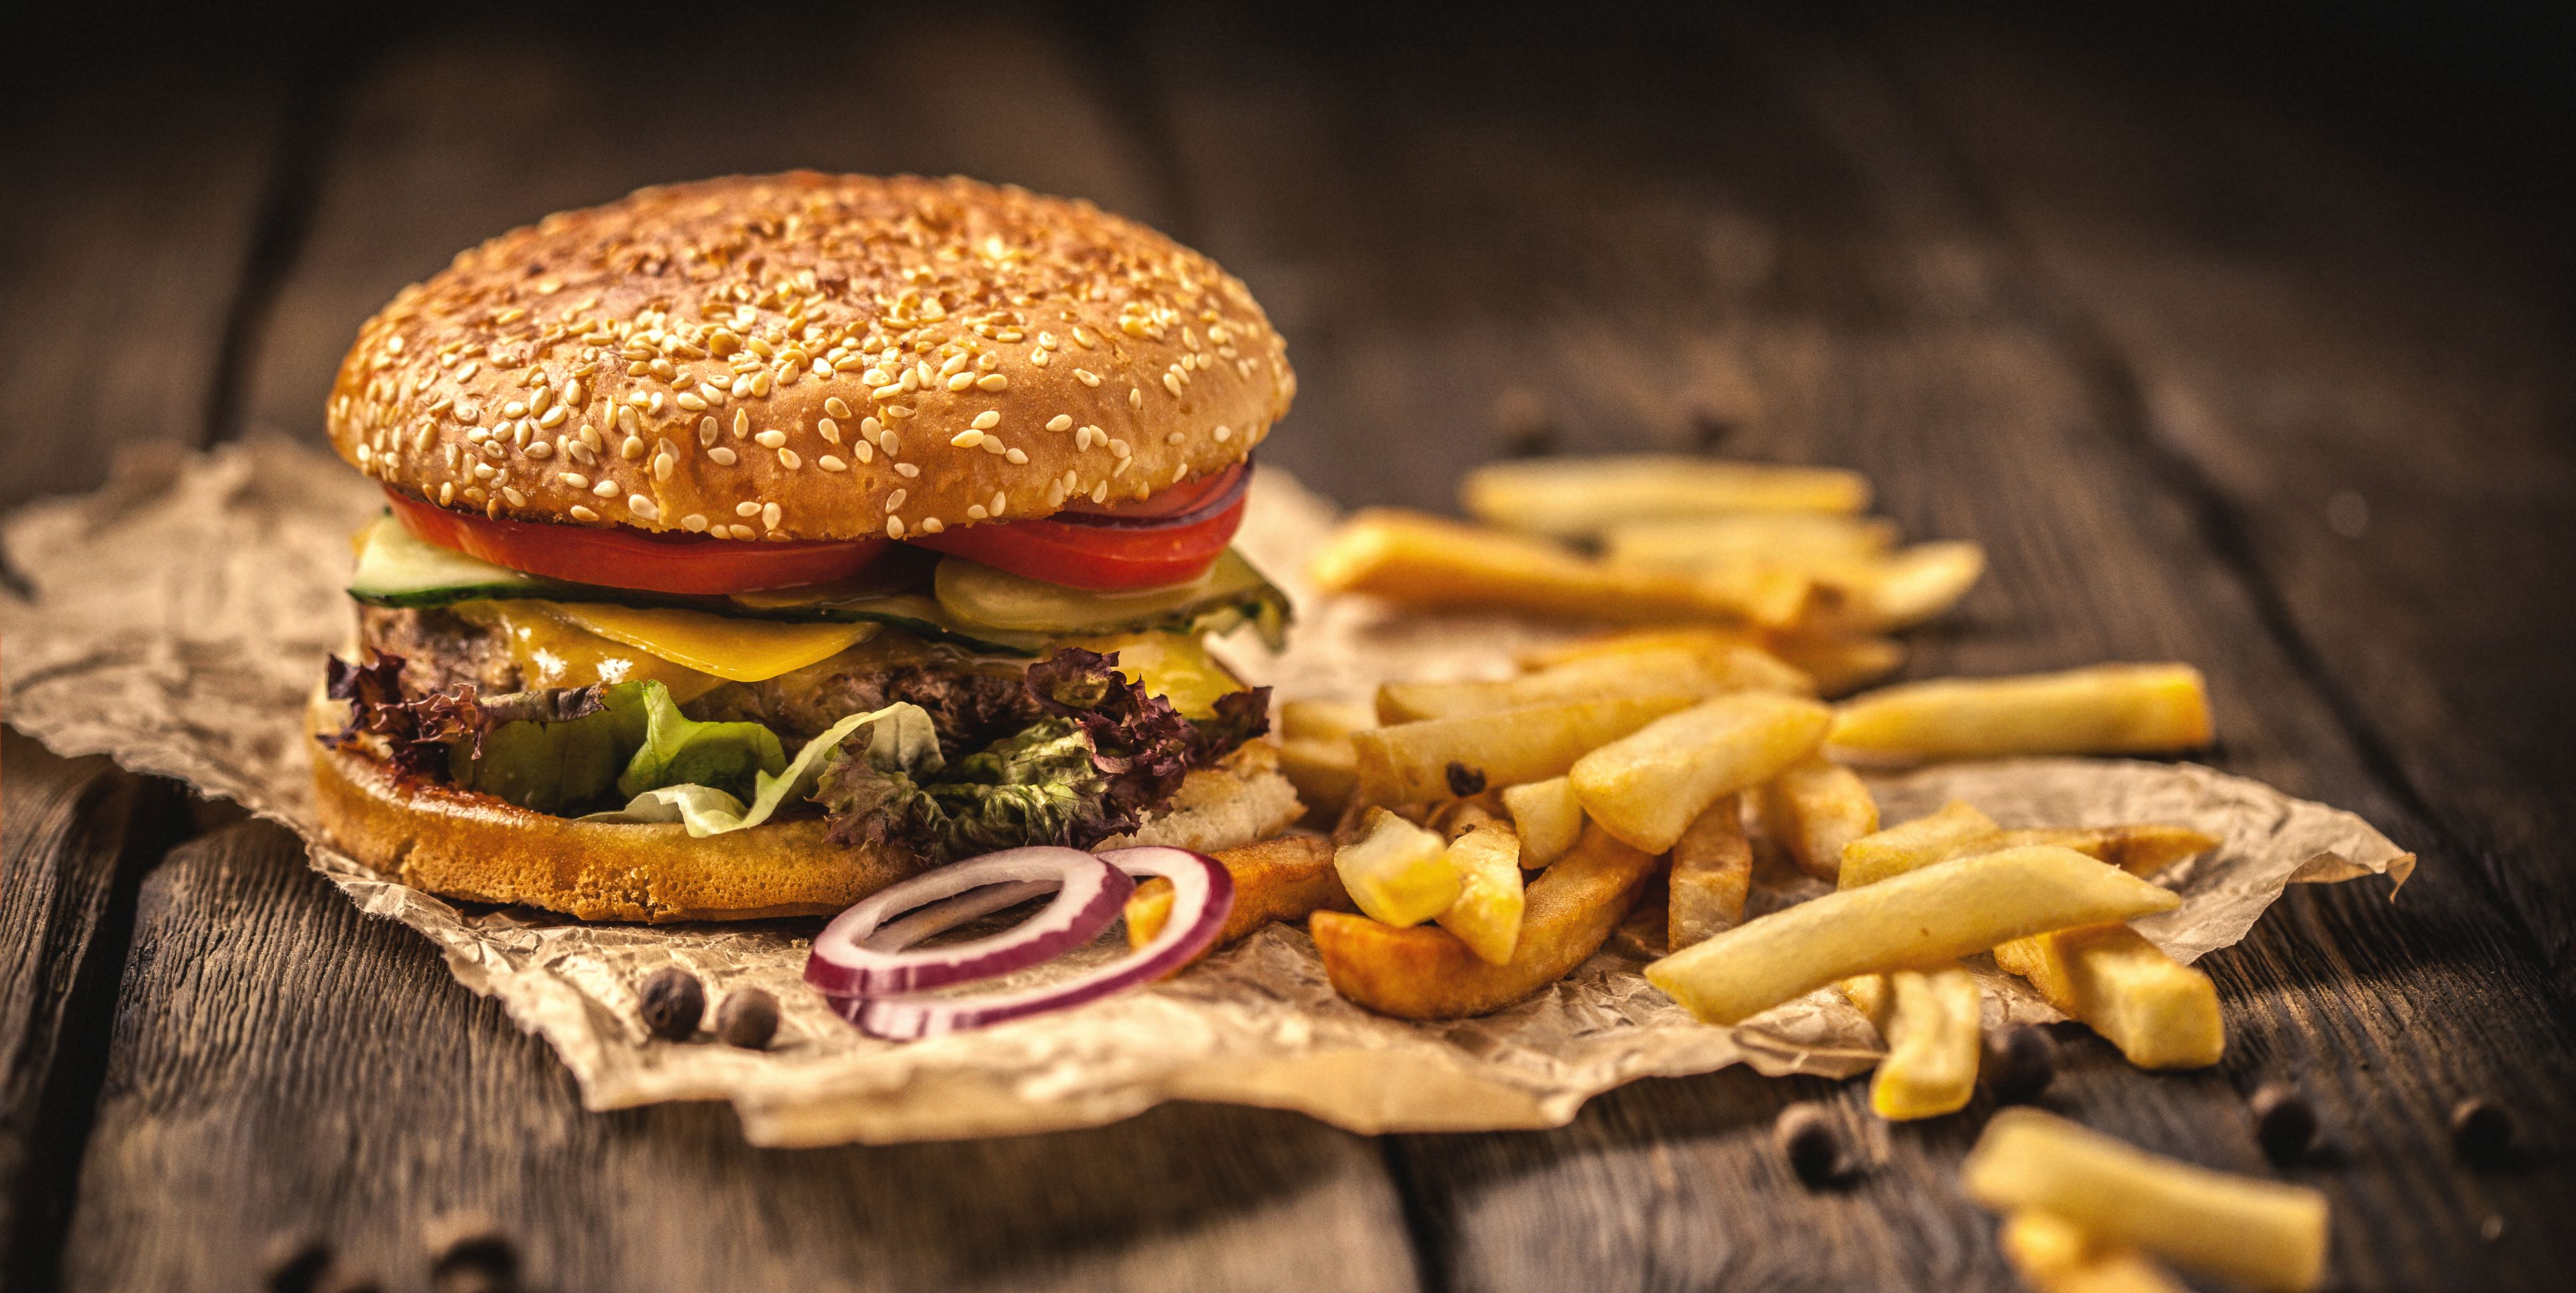 Tasty hamburger with french fries on wooden table